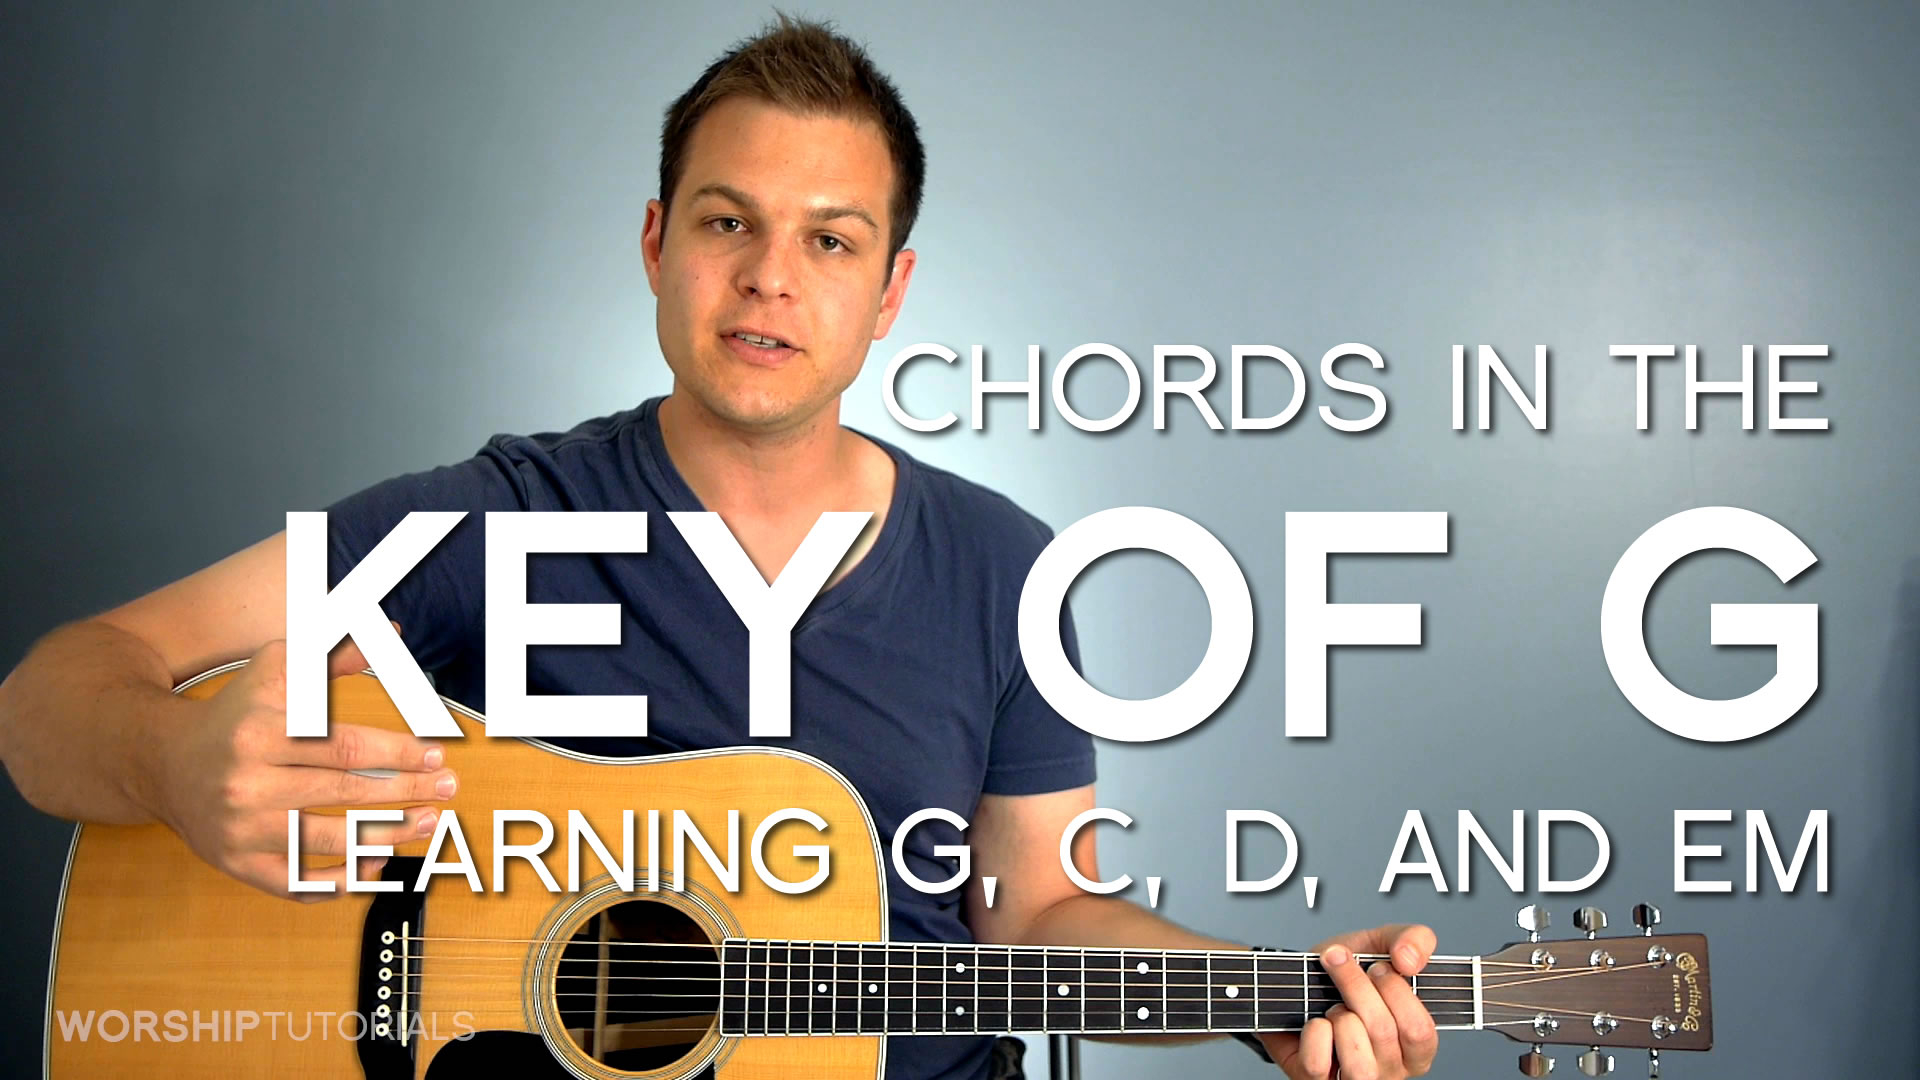 How To Play Guitar Chords Chords In The Key Of G How To Play G C D And Em Worship Tutorials